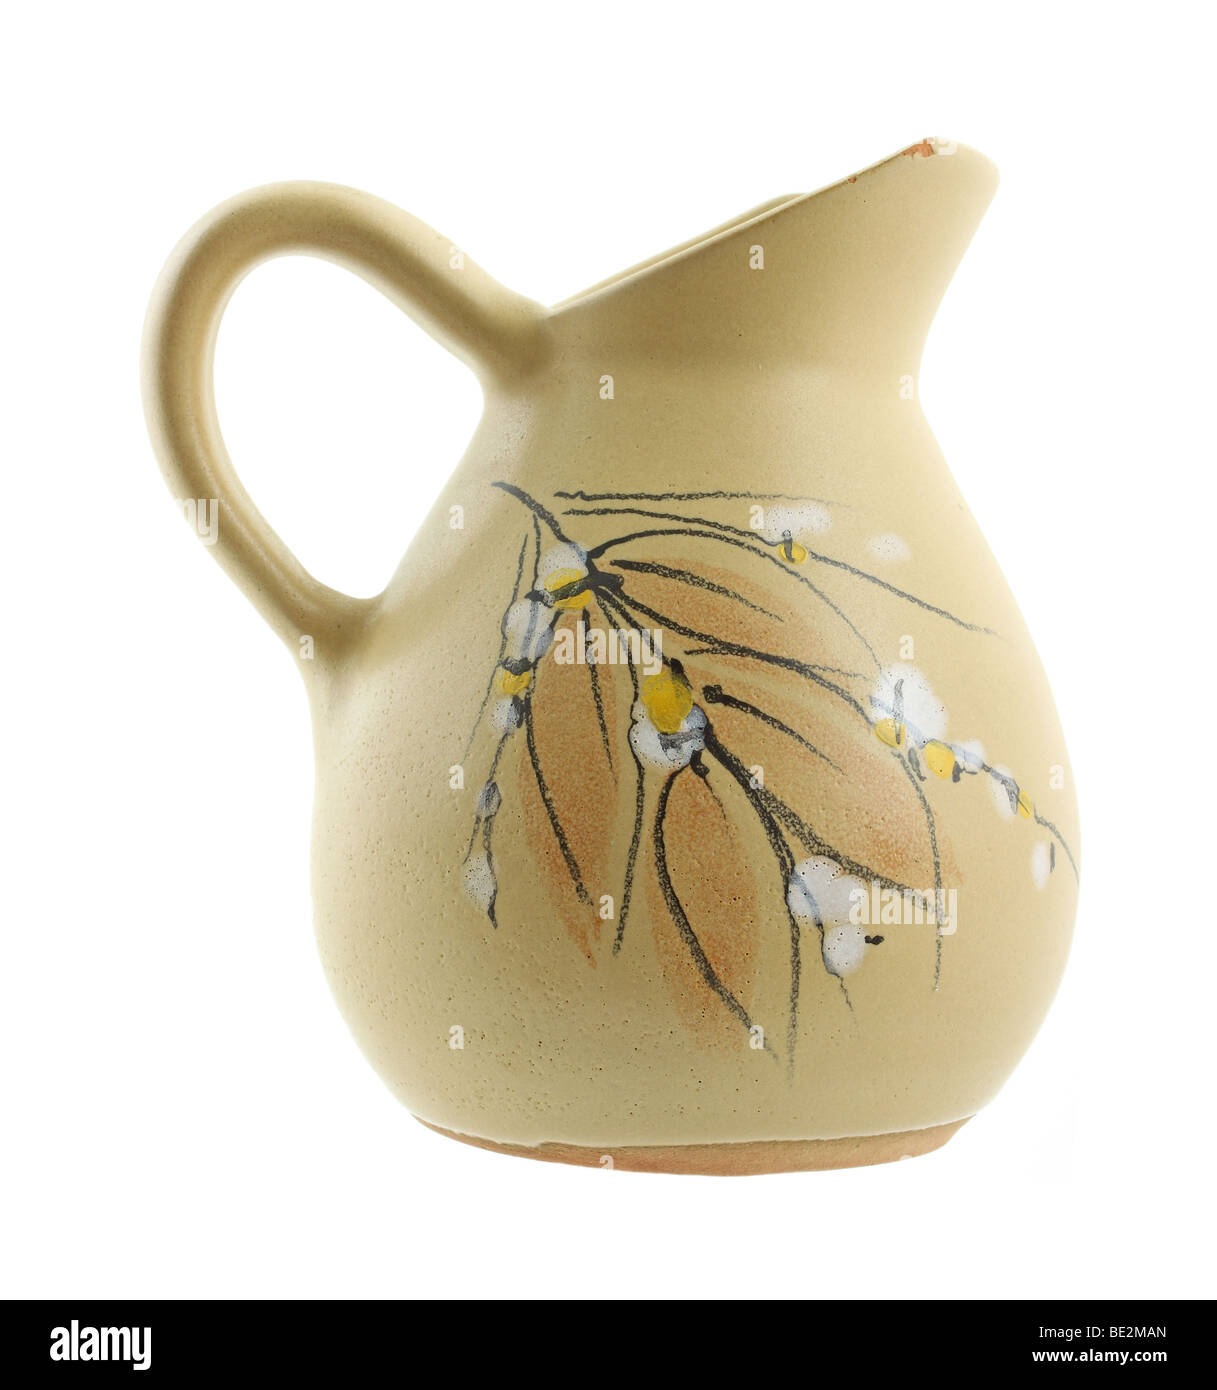 Chipped ewer with floral and leaf design Stock Photo